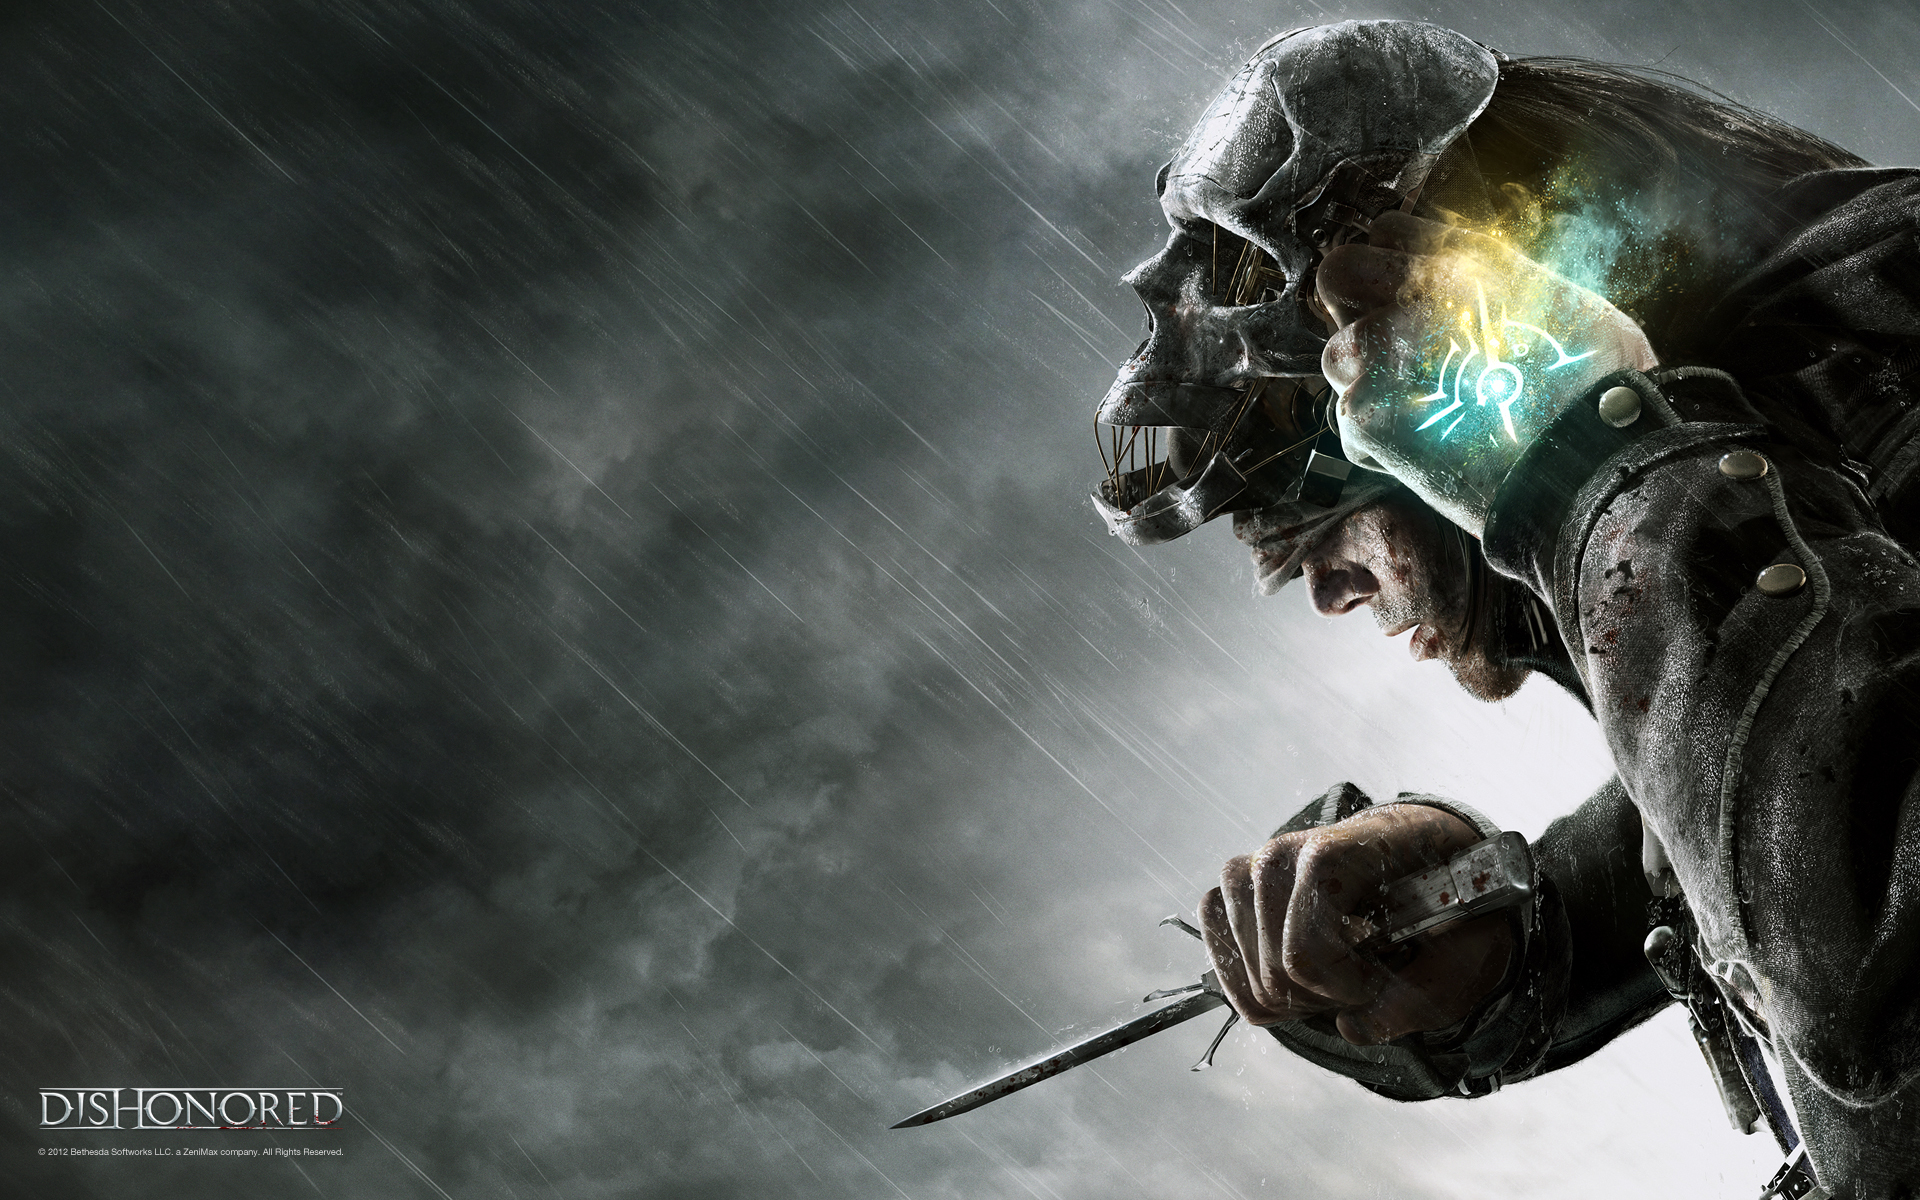 15561 download wallpaper Games, Dishonored screensavers and pictures for free